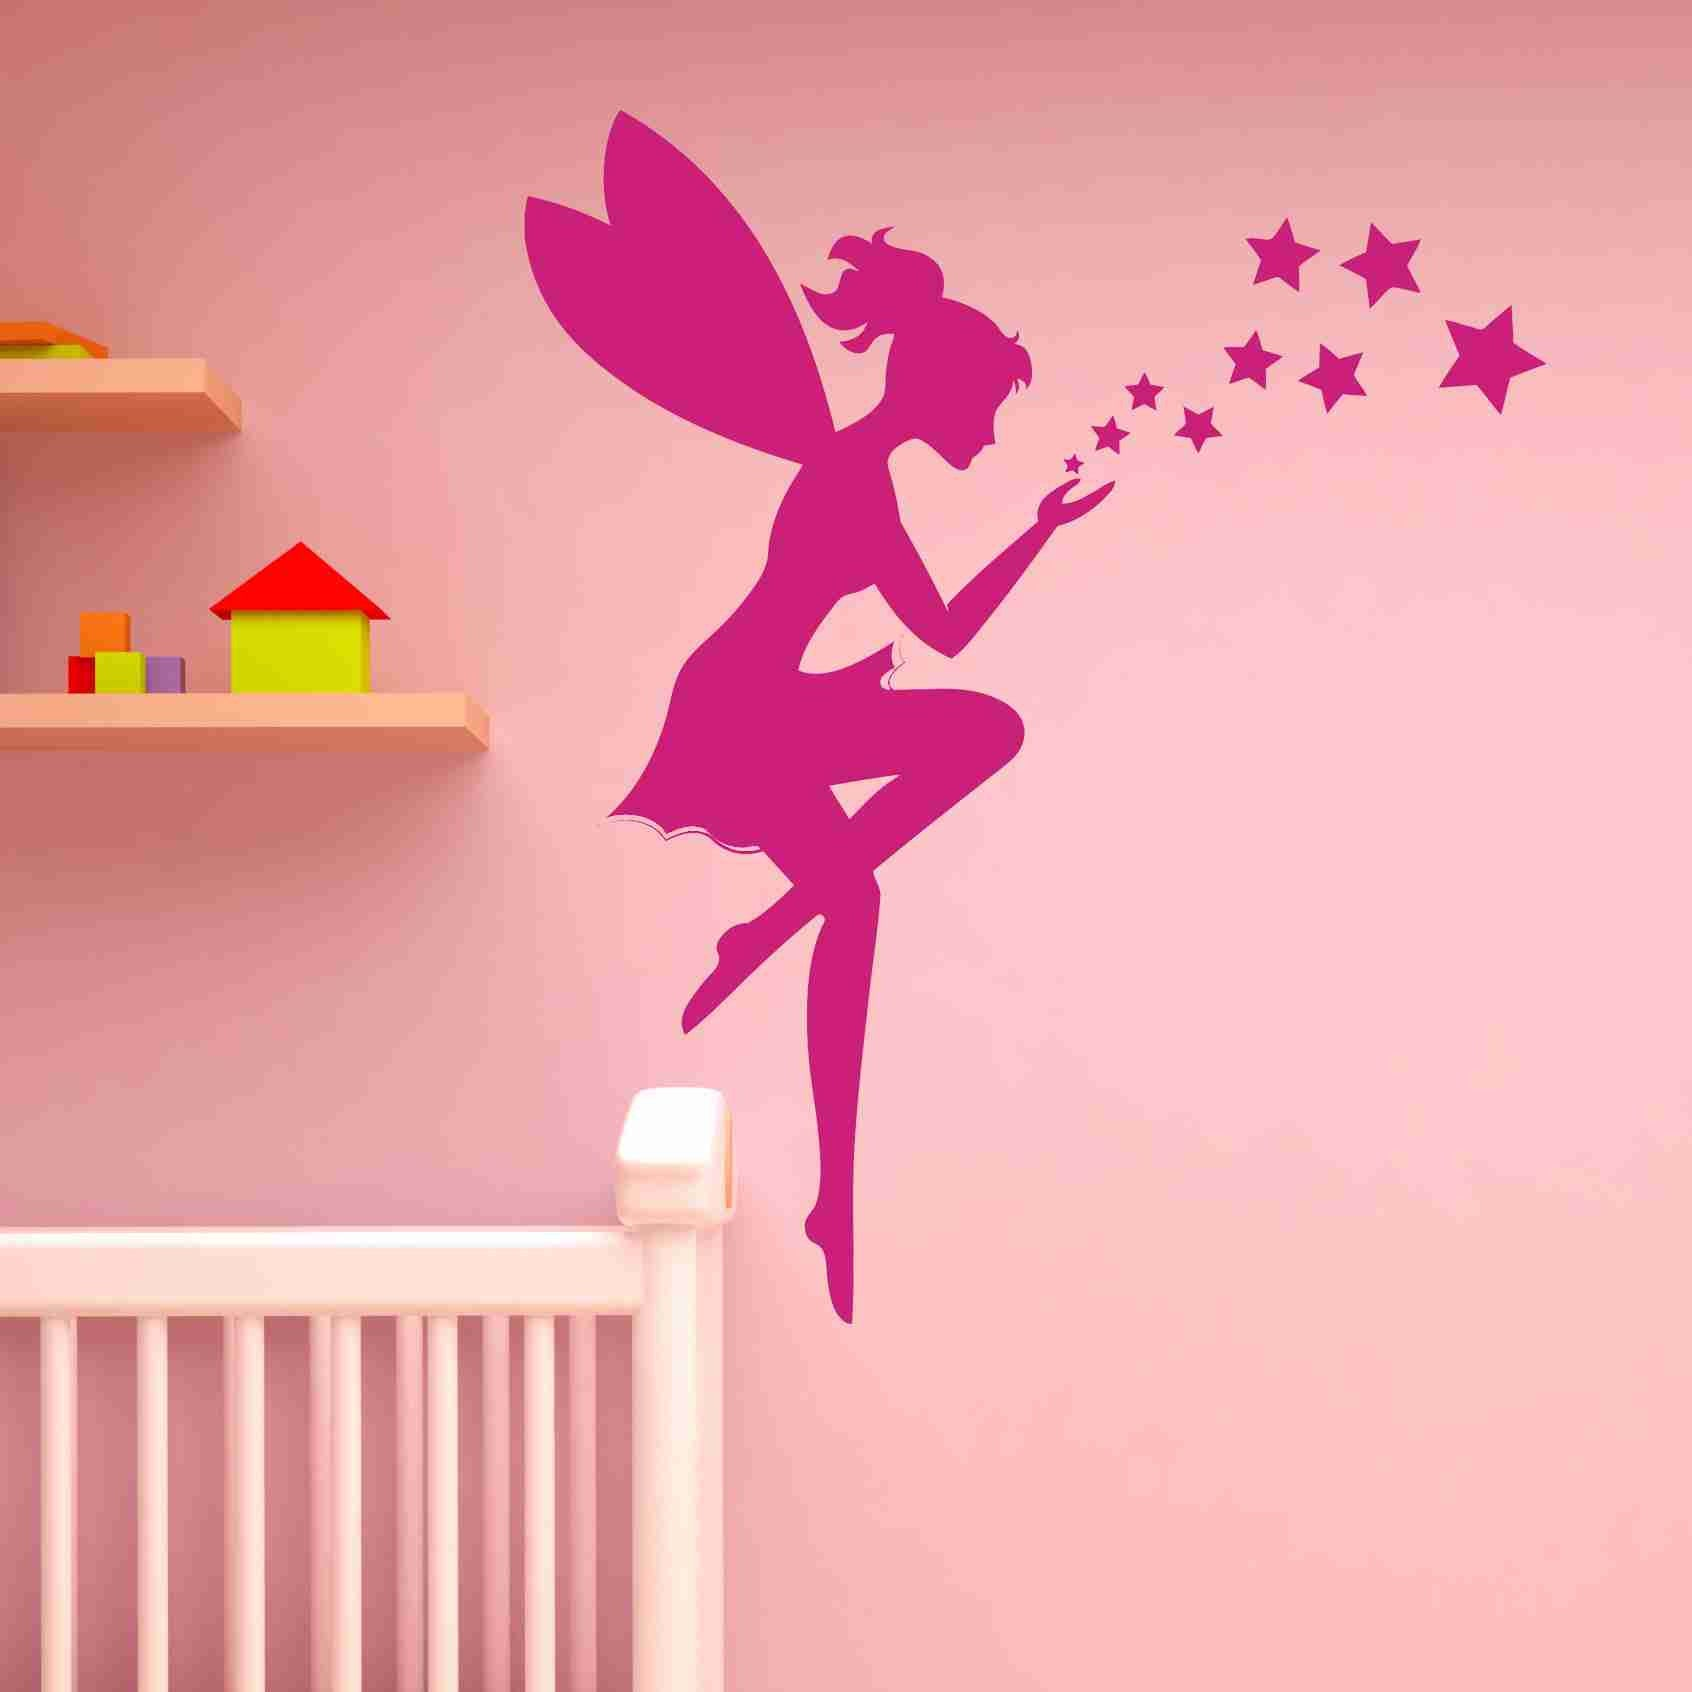 Fairy And Stars Wall Decal Sticker, Girlu0027s Room Vinyl Wall Art, Nursery Wall  Decor